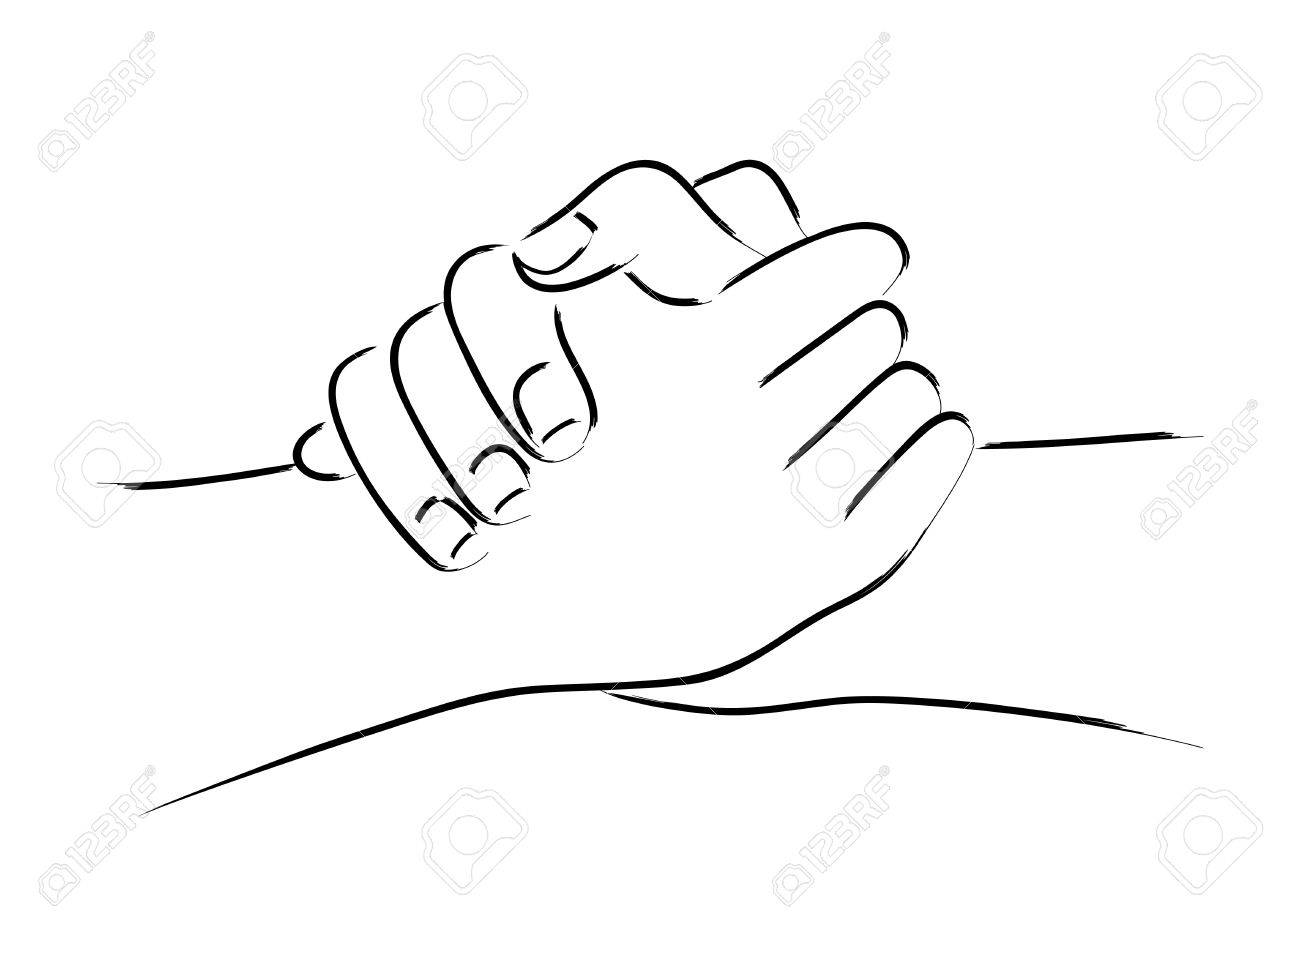 Line art of two hands holding each other strongly.